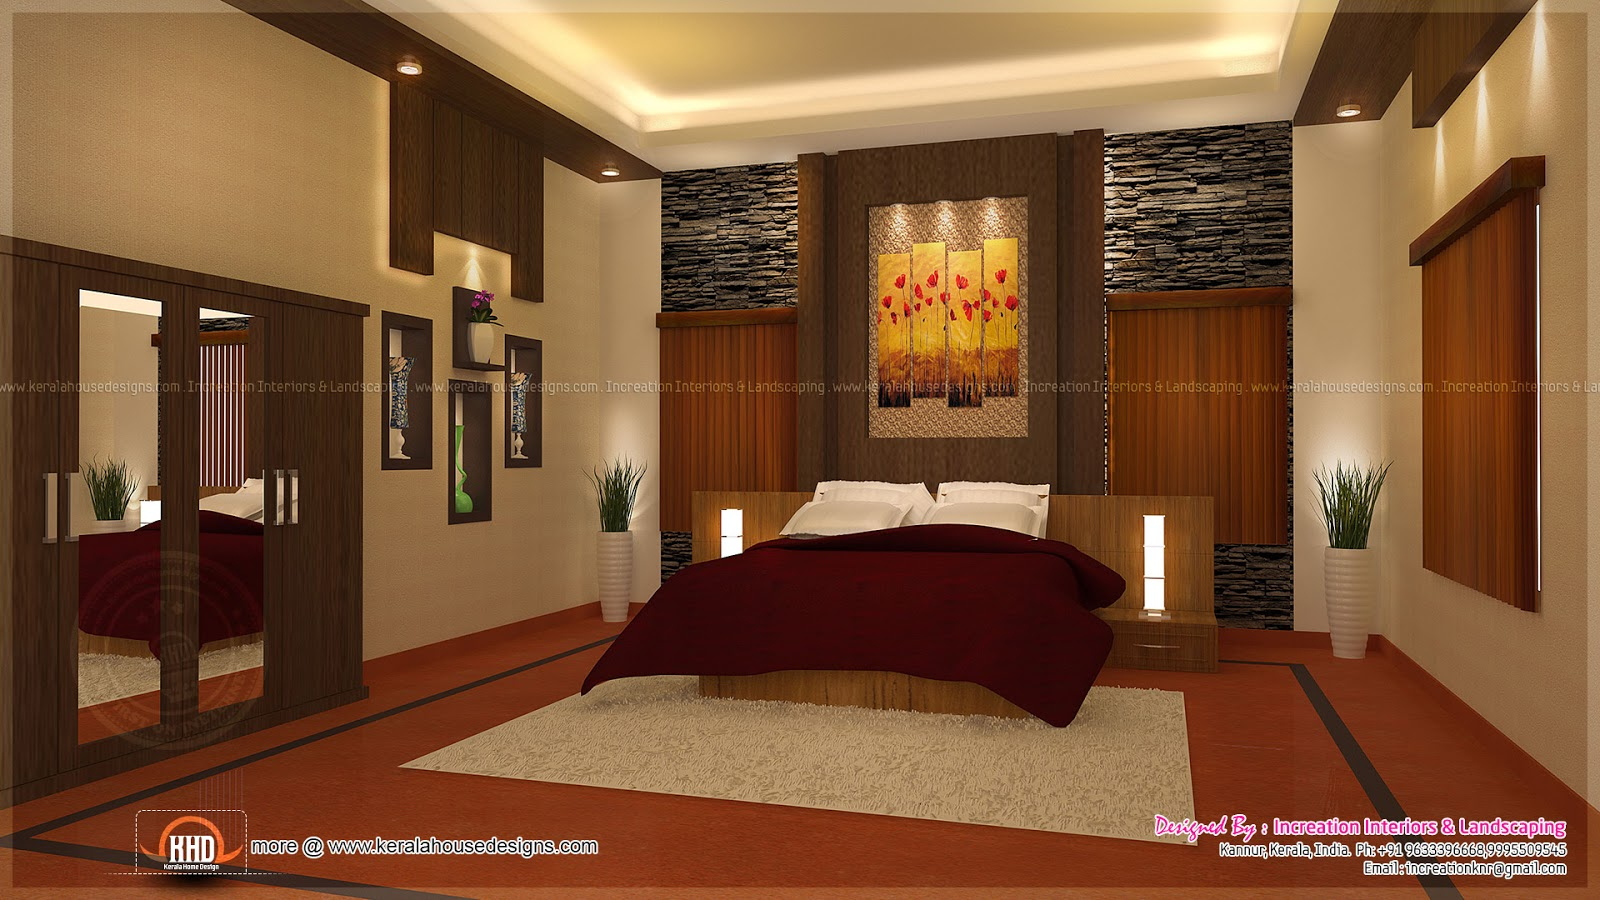 Master bedroom interior Photos of bedrooms interior design